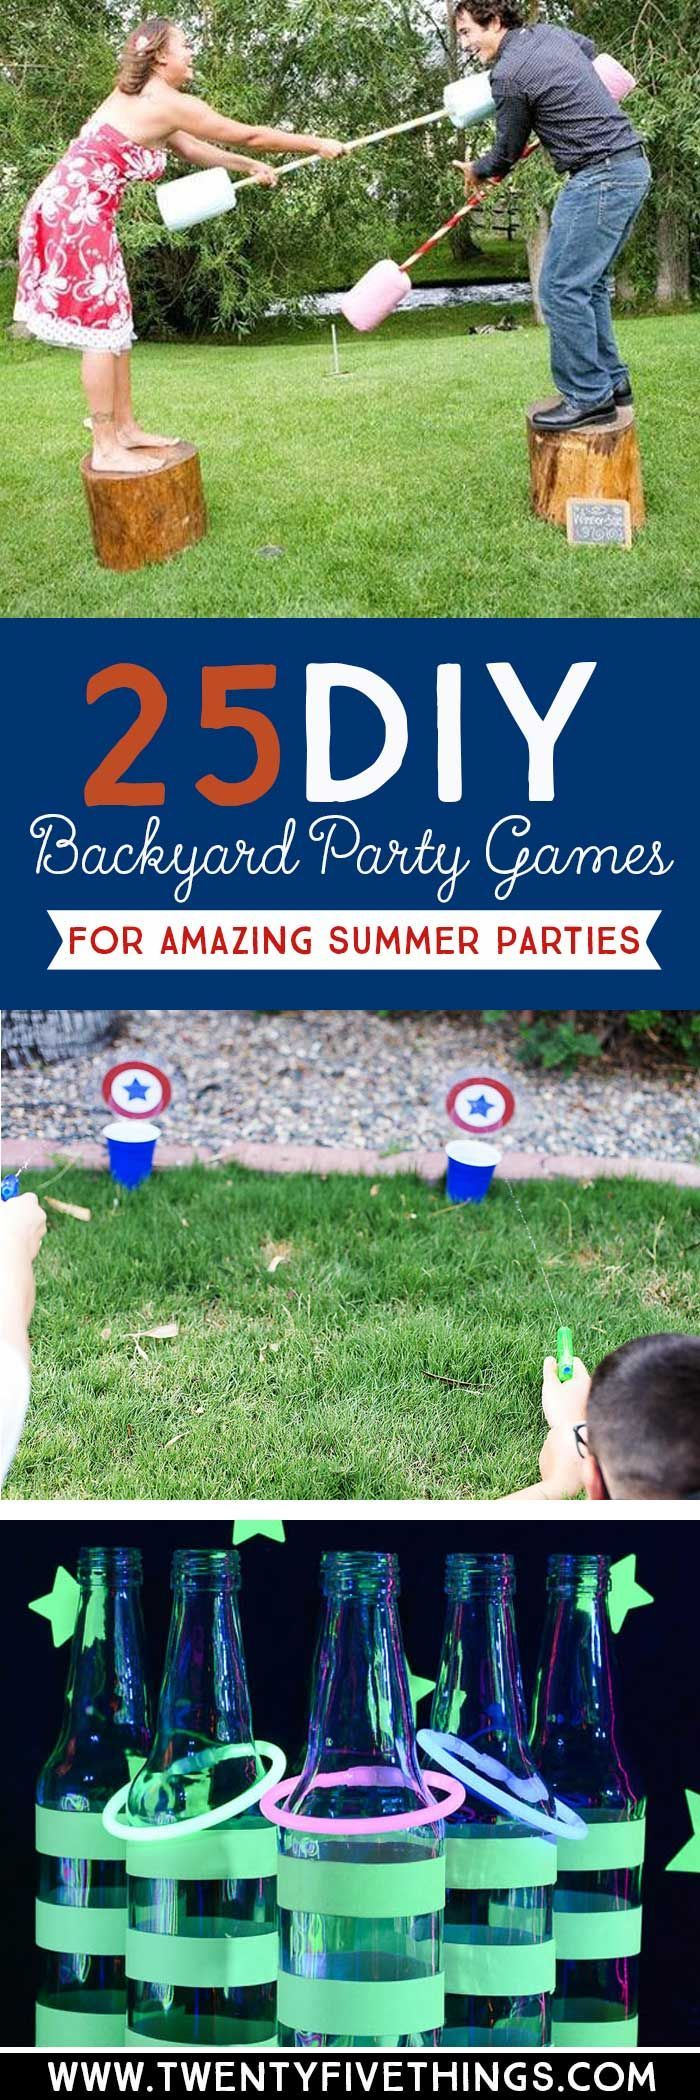 Use These DIY Backyard Party Ideas To Plan Your Summer Parties For 4th Of July